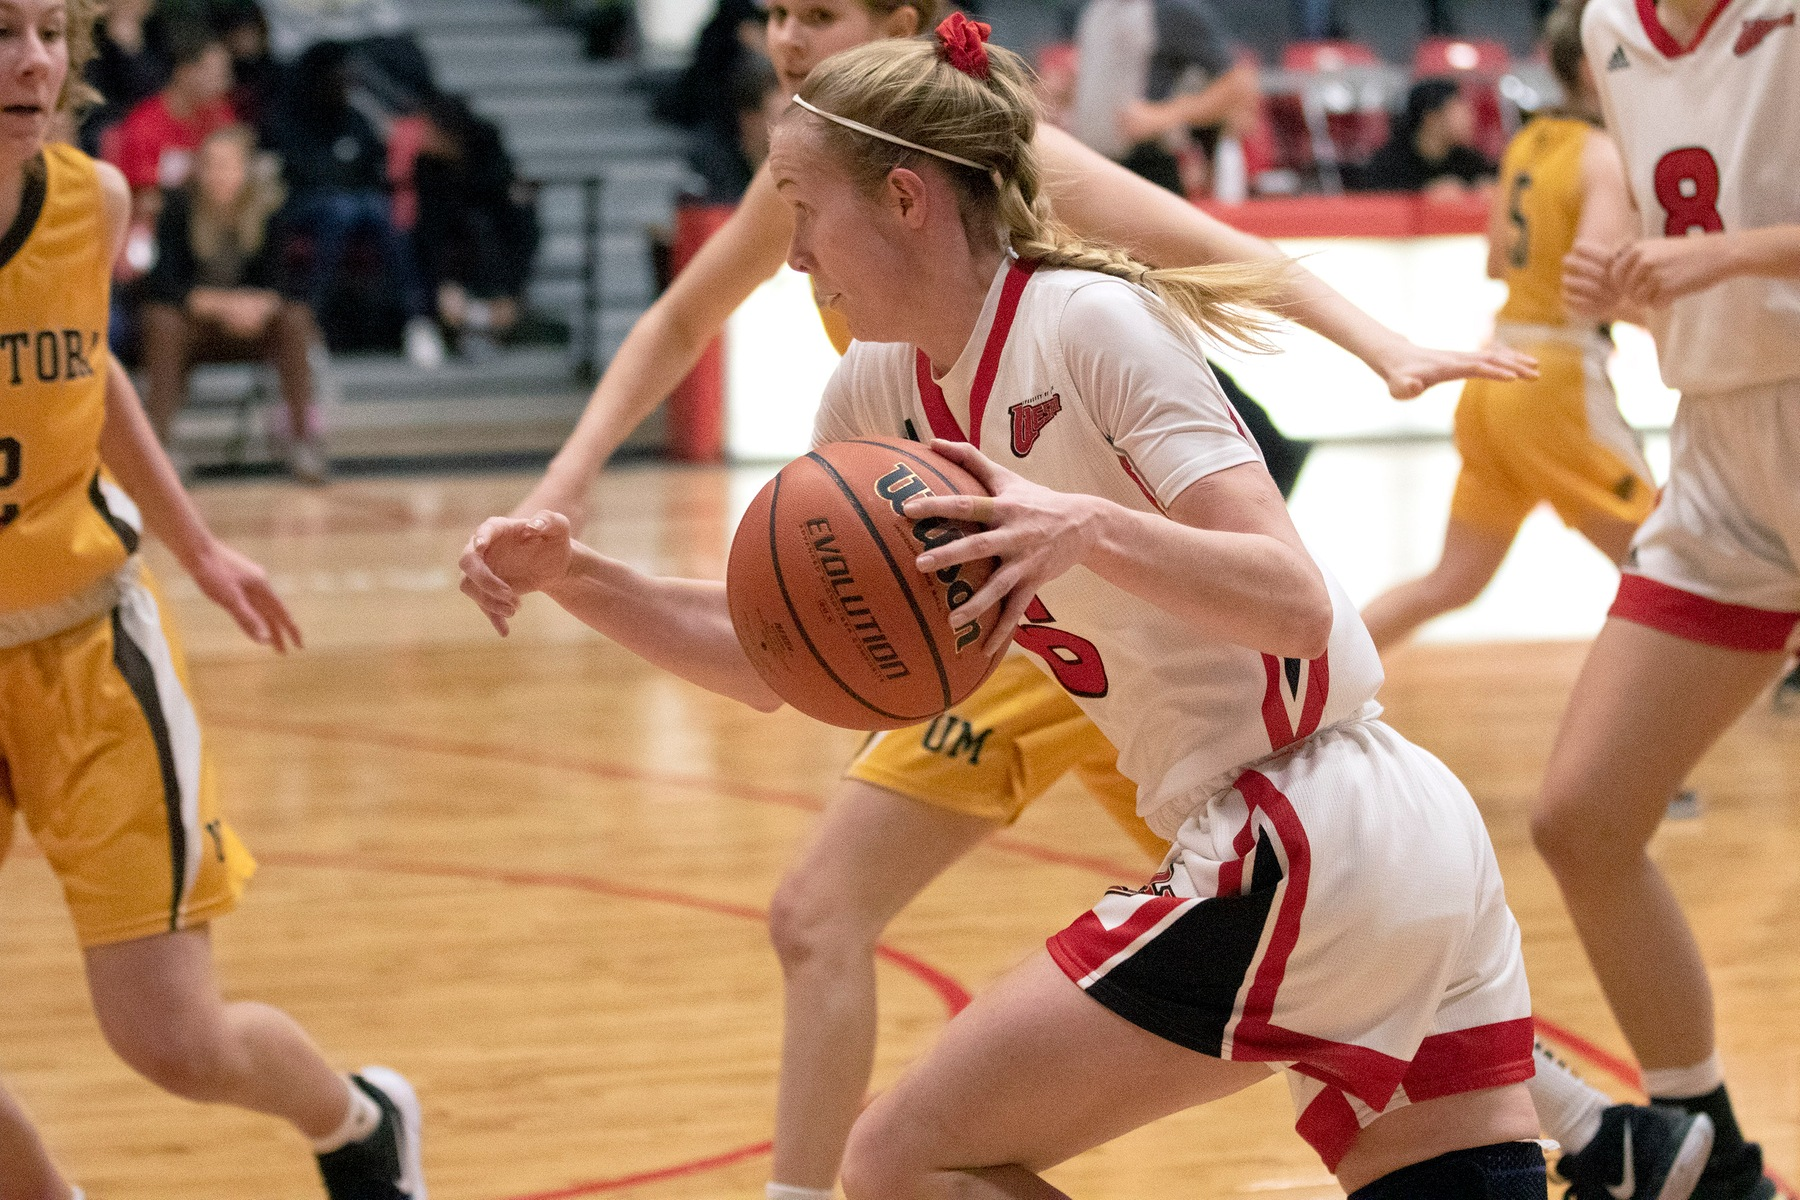 Lena Wenke pushes the ball down the floor during Wesmen women's basketball action against Manitoba on Saturday, November 23, 2019. (David Larkins/Wesmen Athletics)